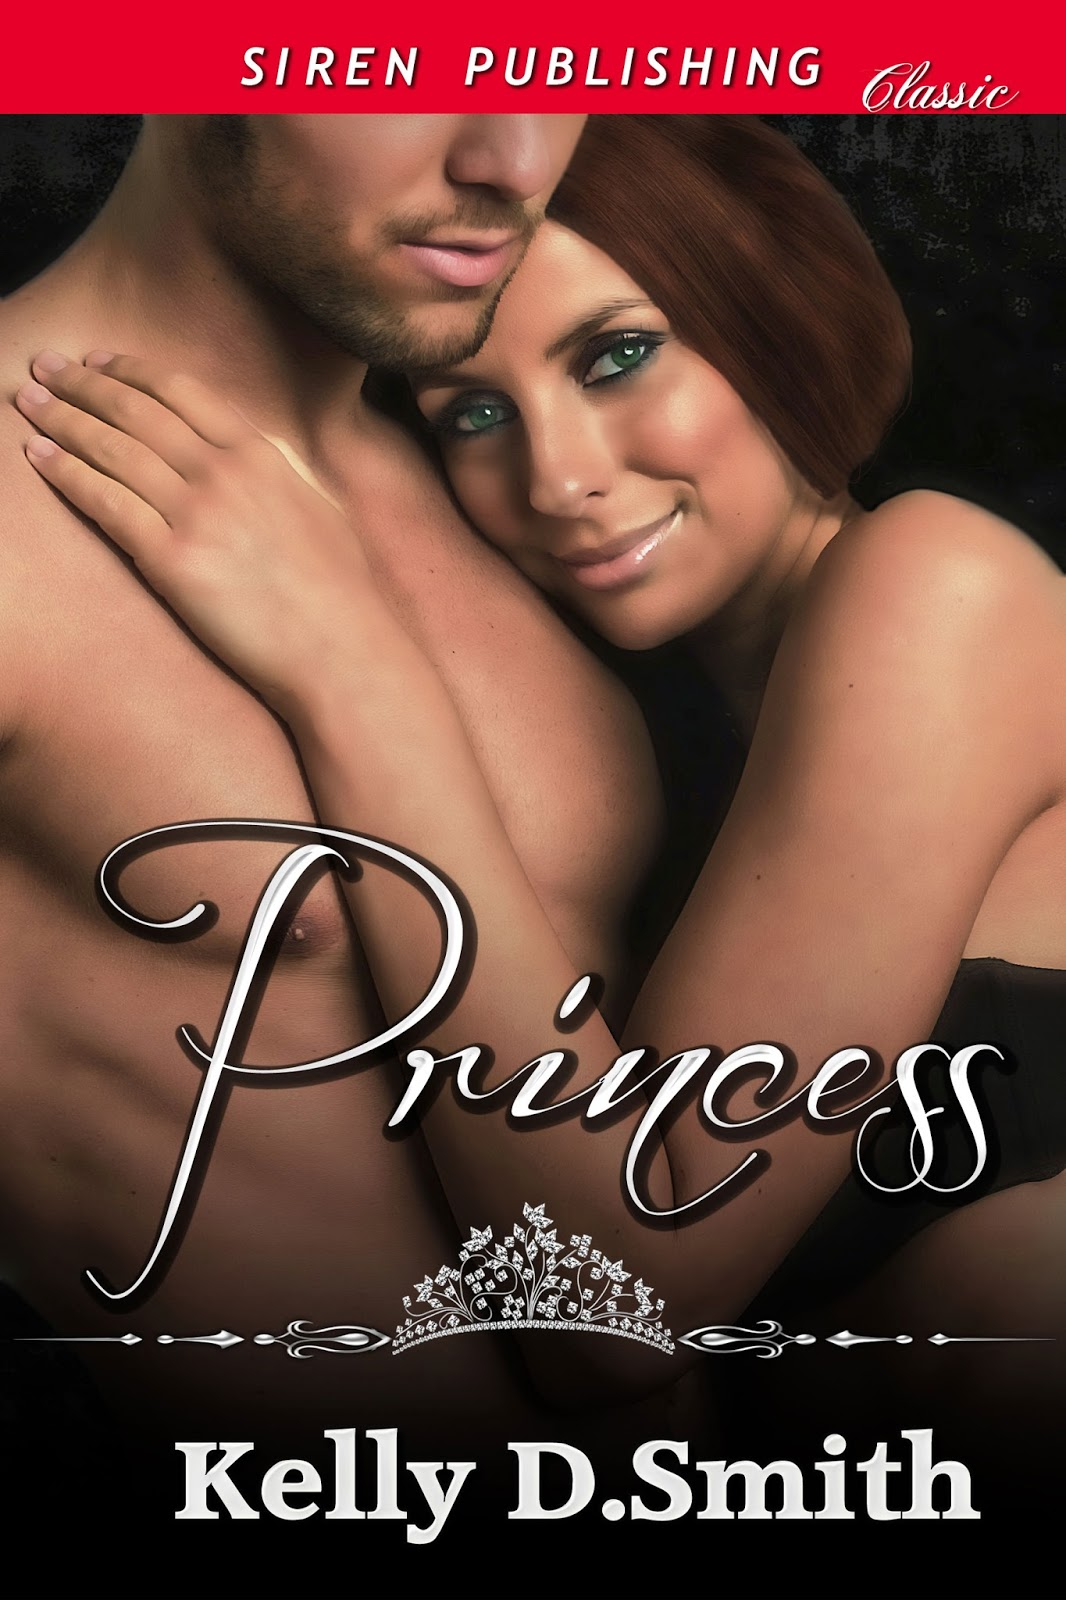 Interview with romance author Kelly D. Smith